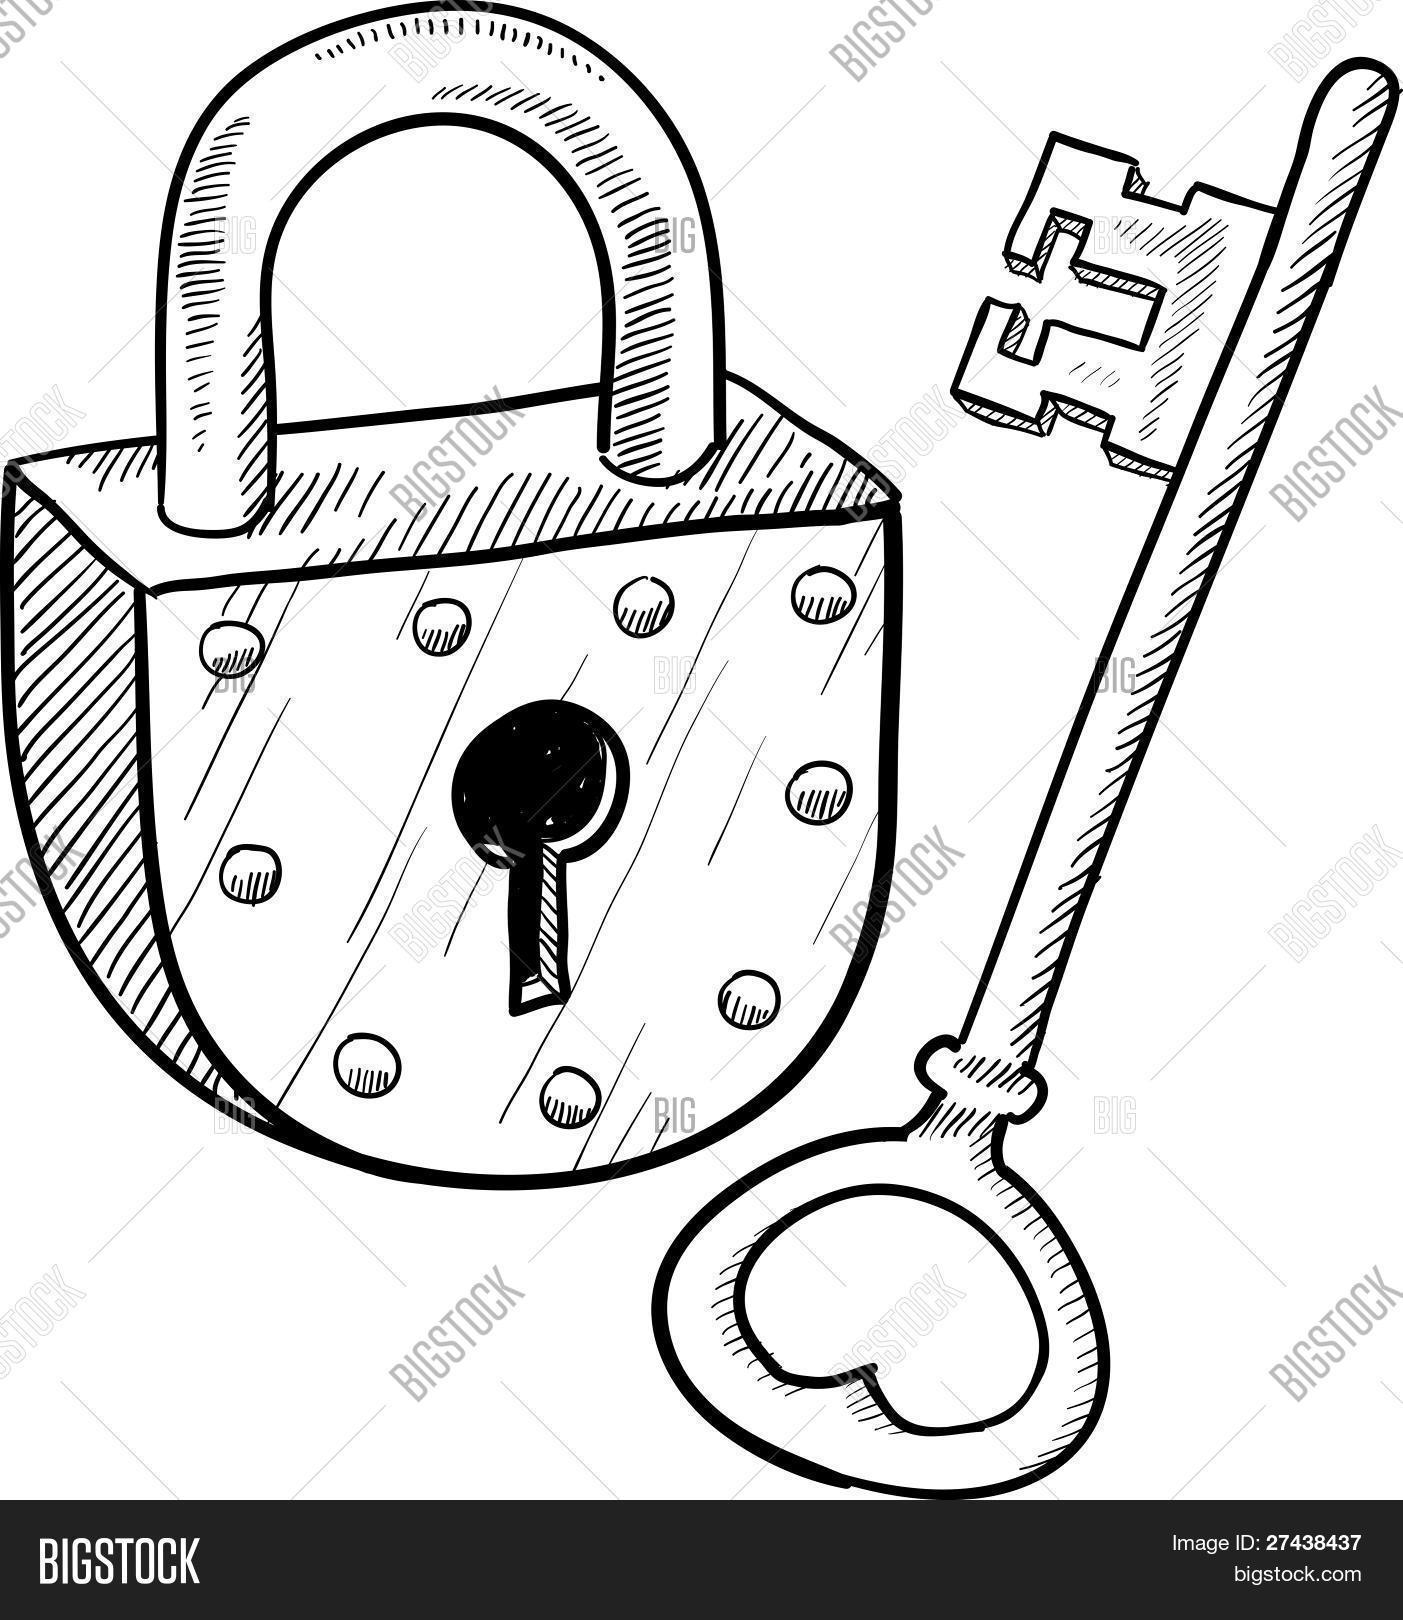 Lock And Key Drawing at GetDrawings.com | Free for personal use Lock ... for Lock And Key Clipart Black And White  111bof